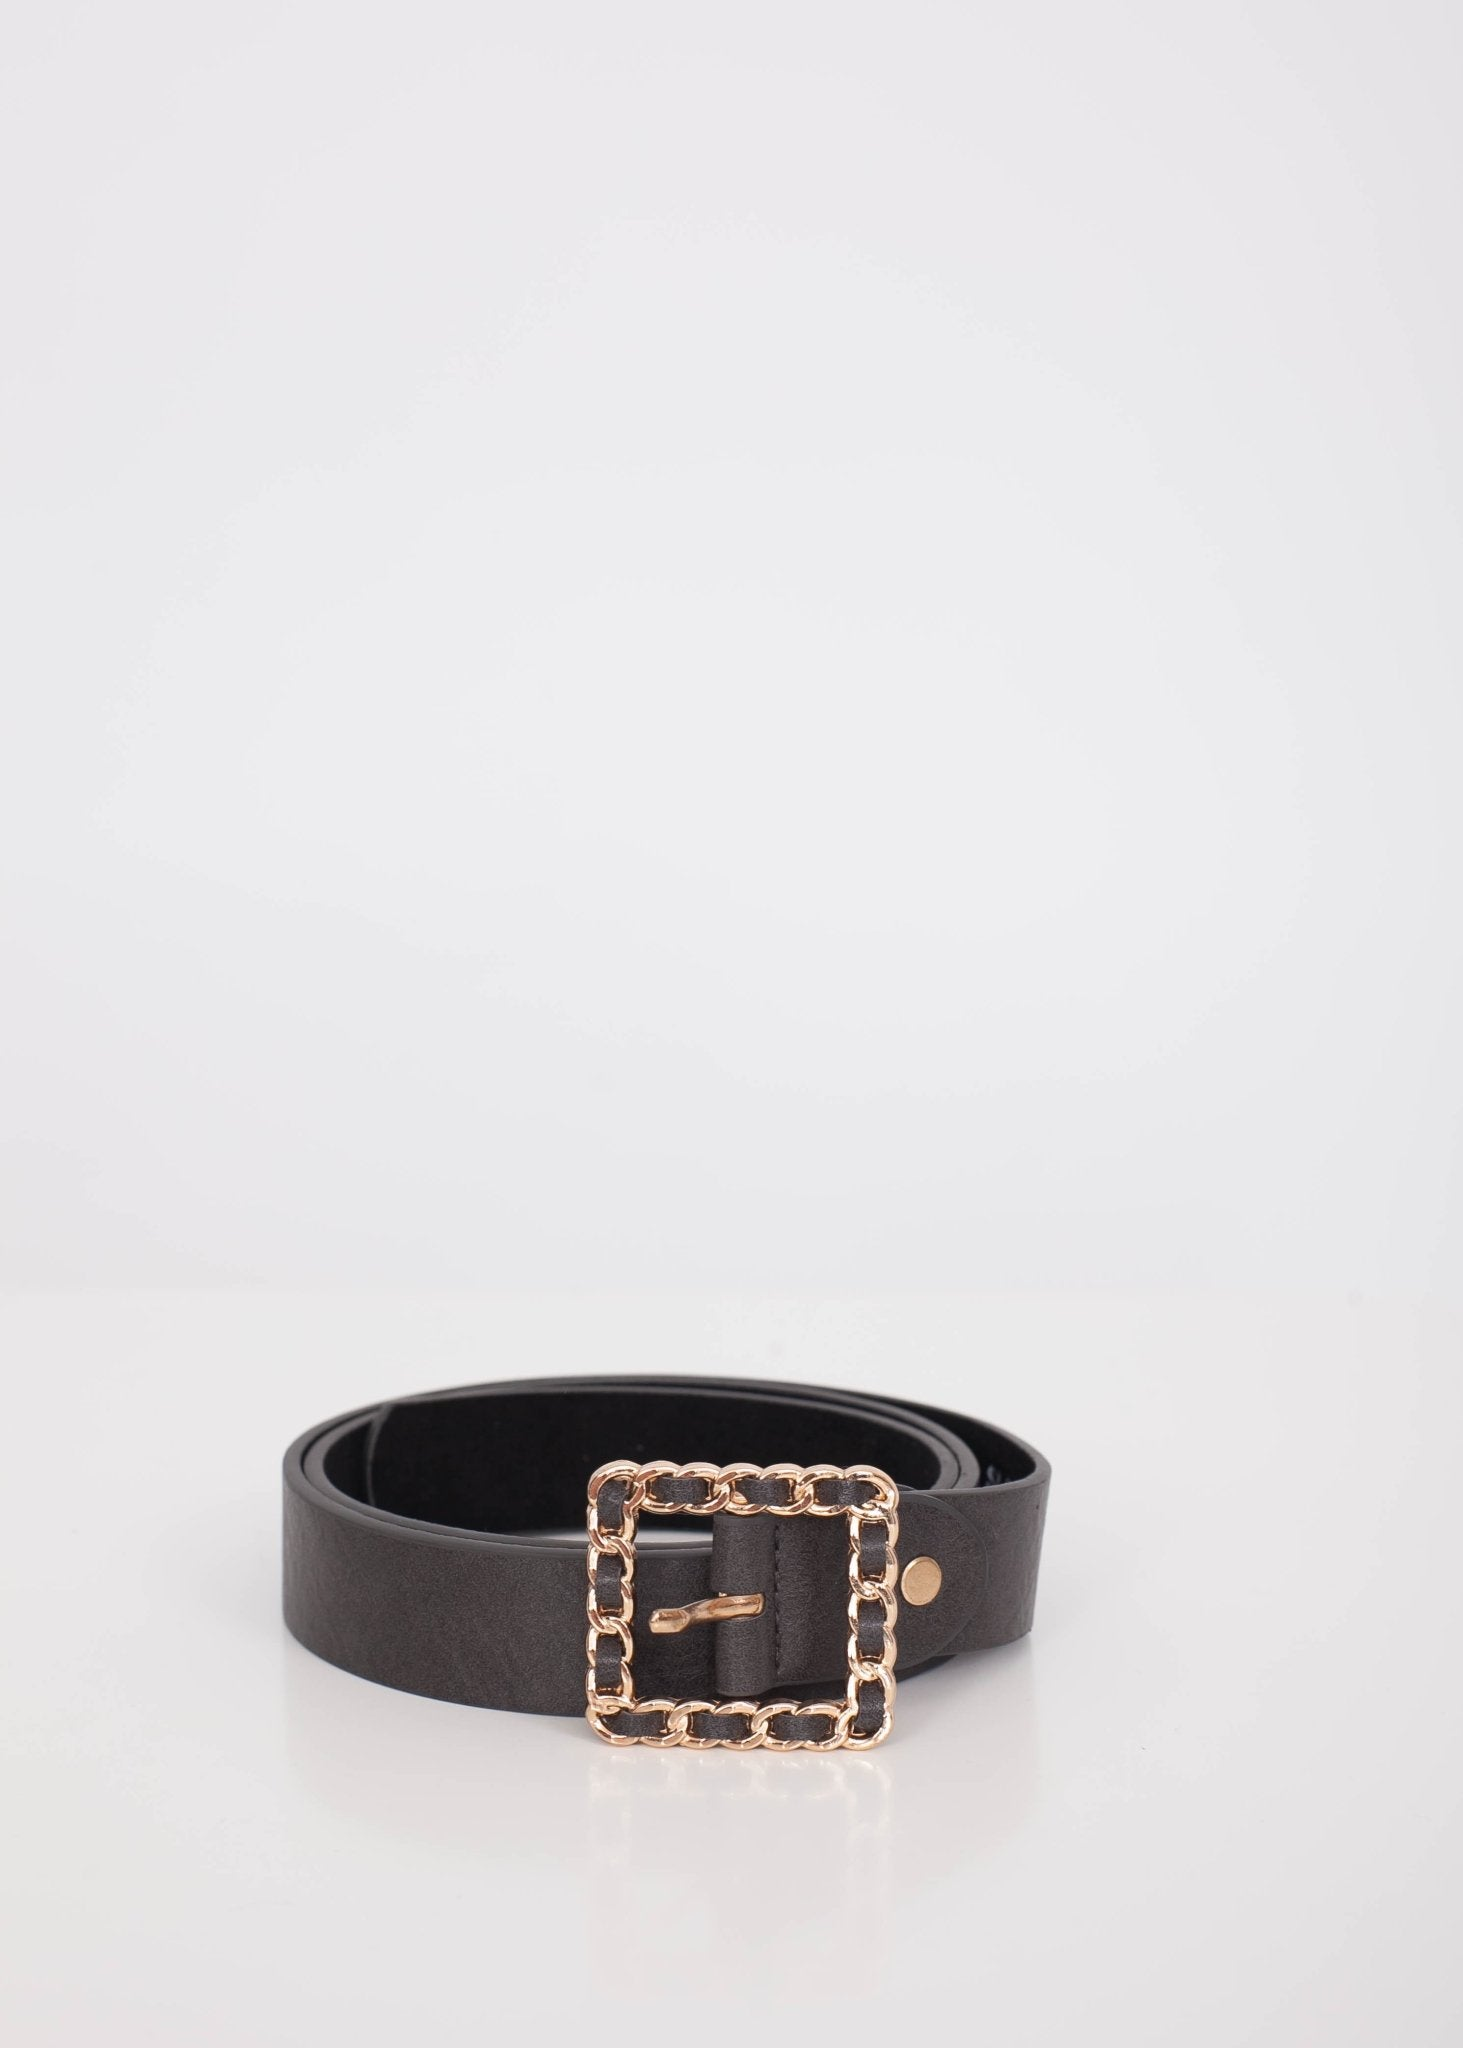 Emilia Chain Buckle Belt - The Walk in Wardrobe